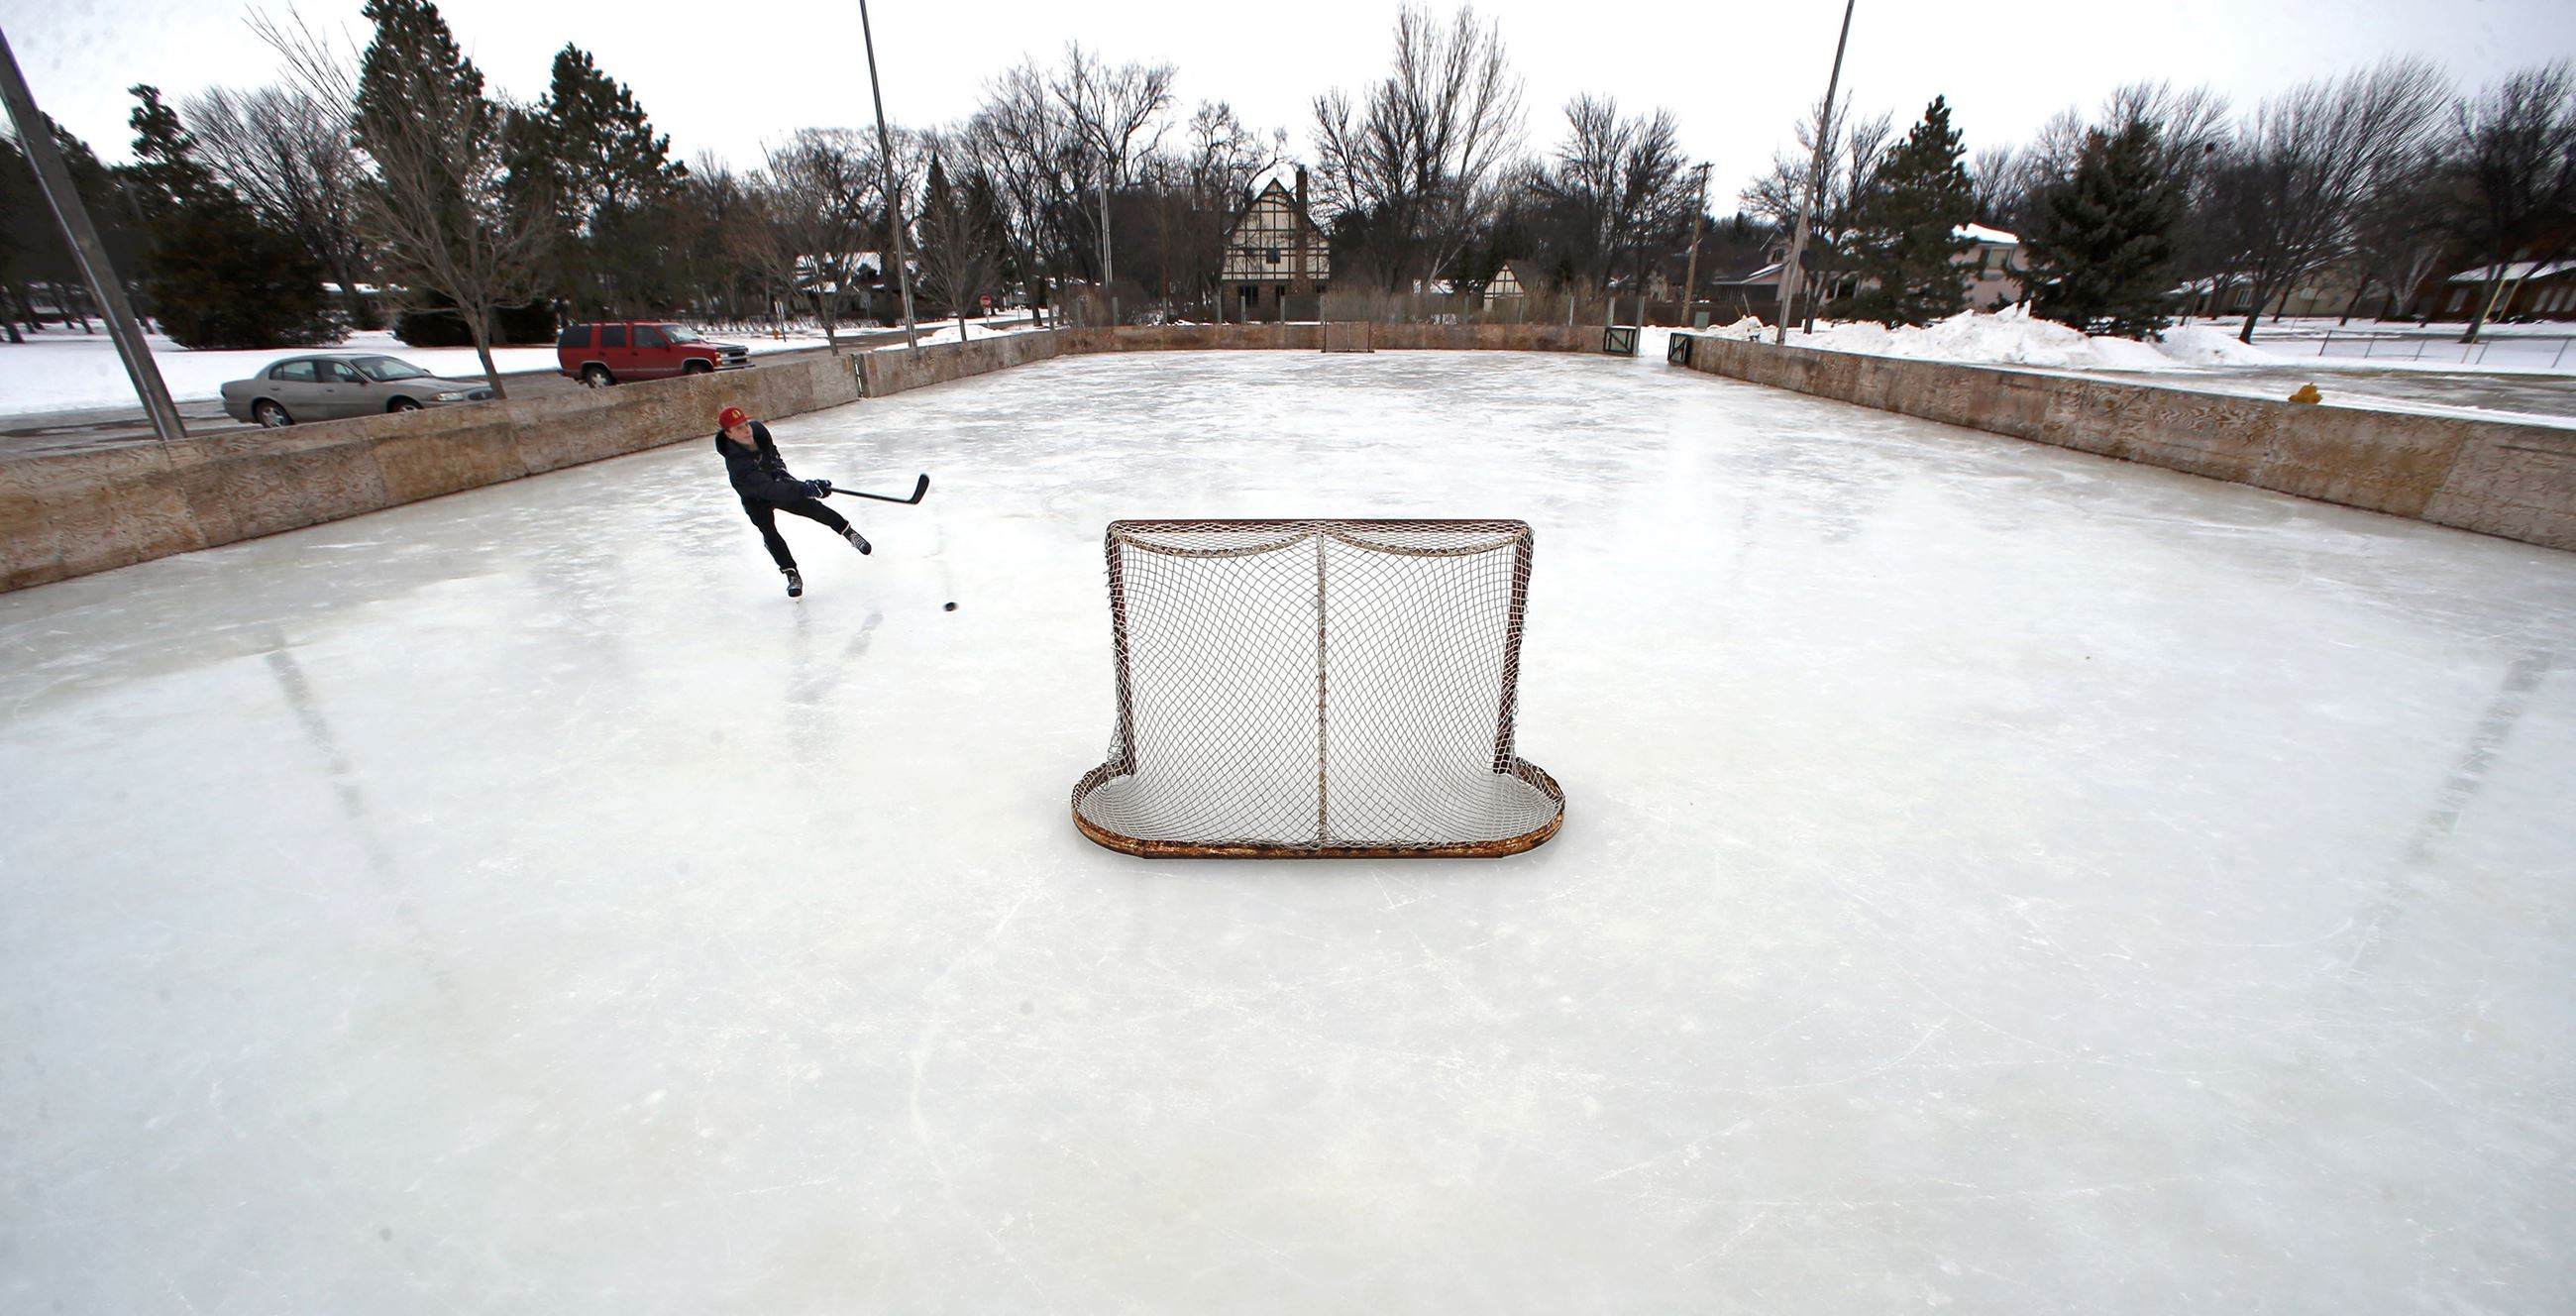 Boy playing hockey on outdoor ice rink